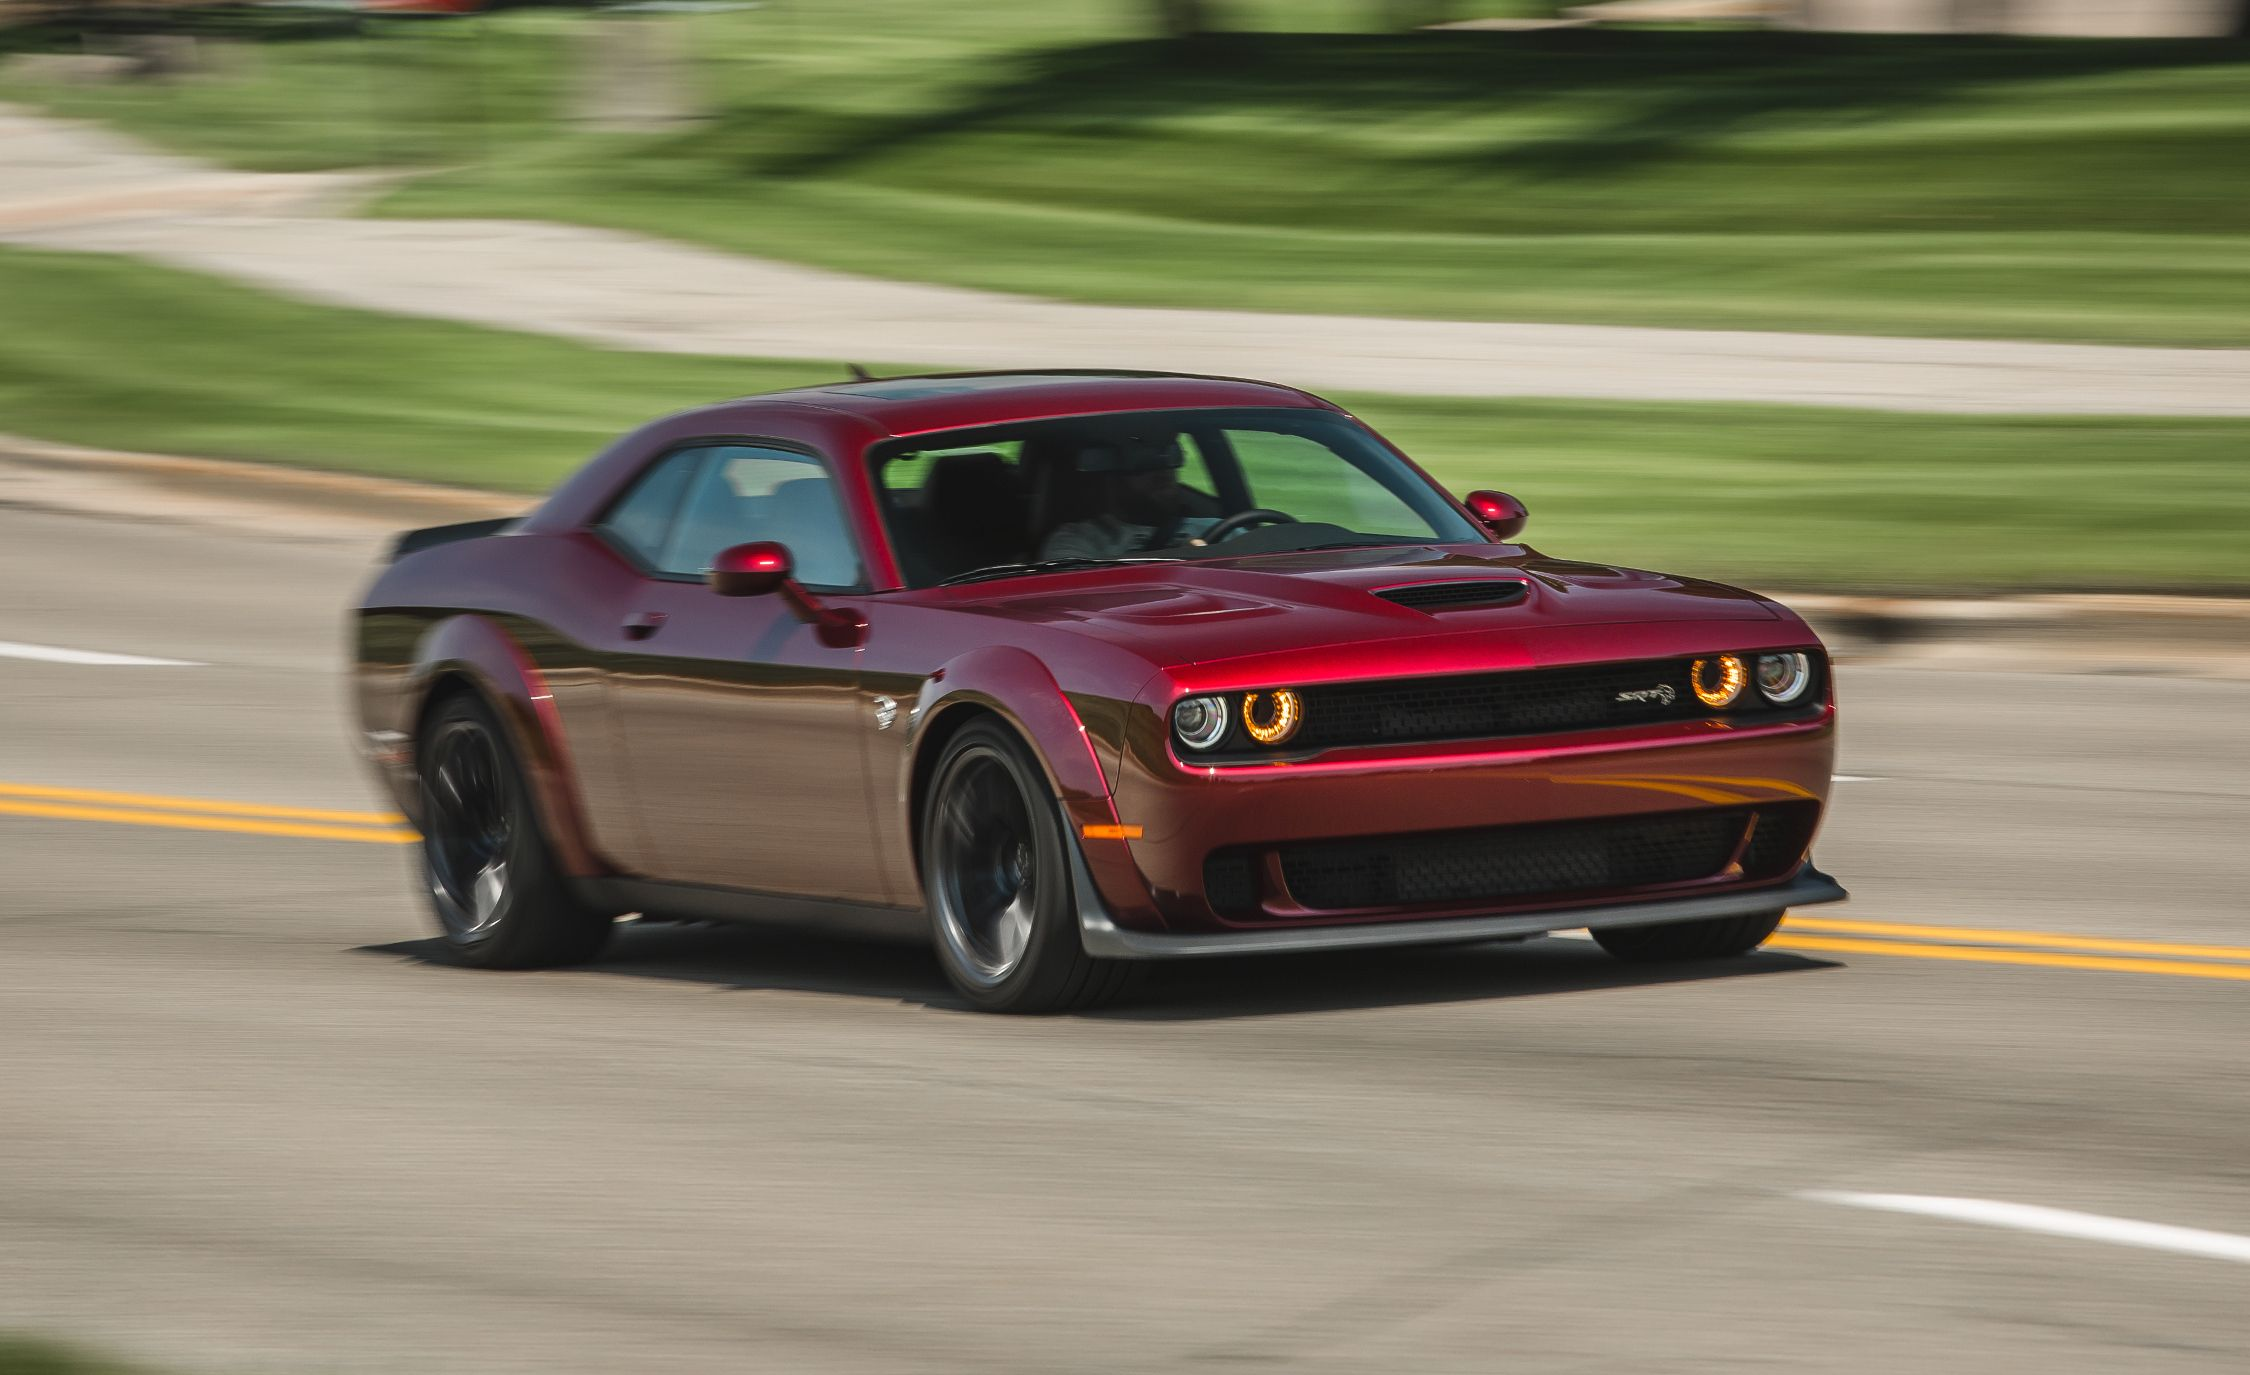 2019 Dodge Challenger Srt Hellcat Reviews Price Photos And Specs Car Driver